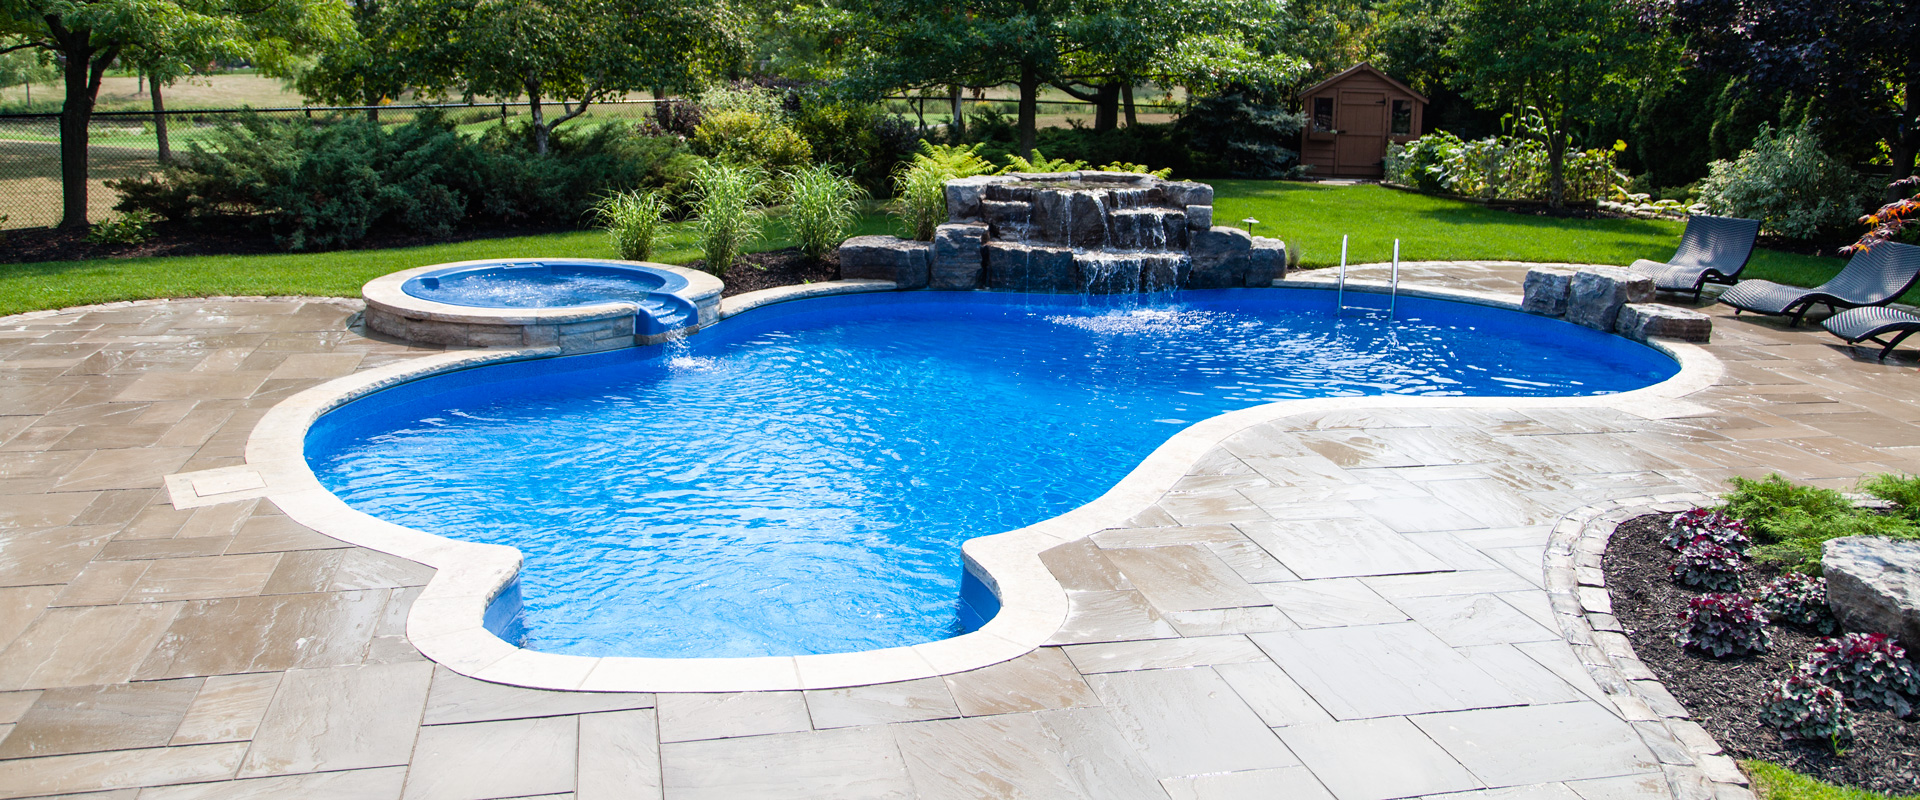 How to convert your pool to salt water boldt pools and spa - Convert swimming pool to saltwater ...